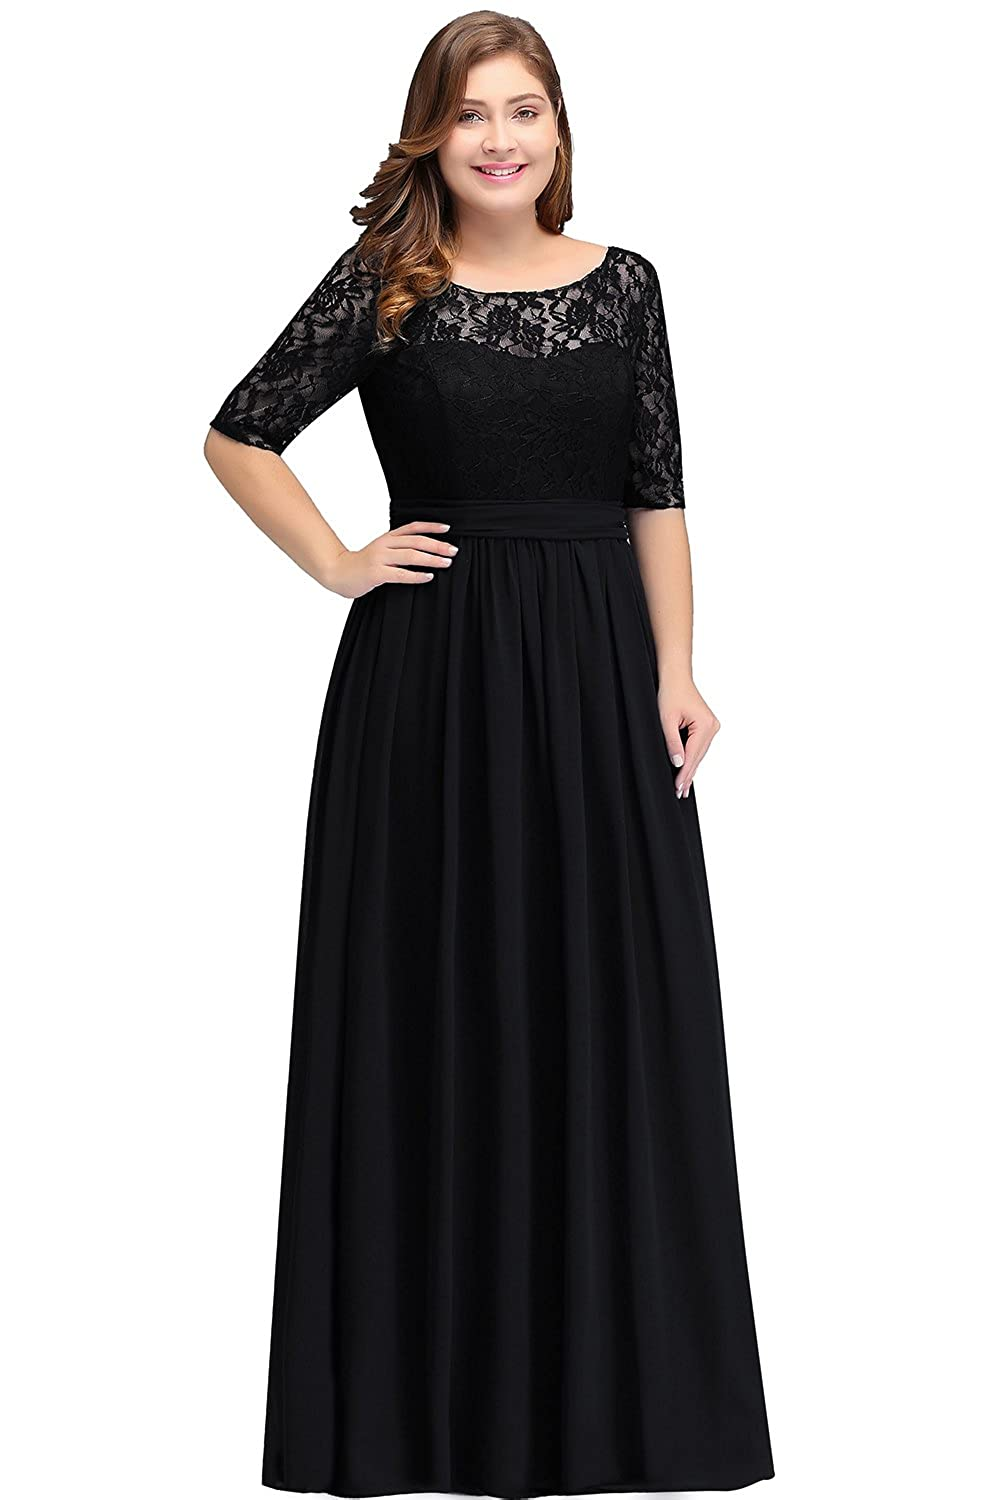 c3eaba772021 Detailed size info please check OUR SIZE CHART among main product images,  NOT size info link. The drop down size is US PLUS SIZE. Zipper closure.  This dress ...